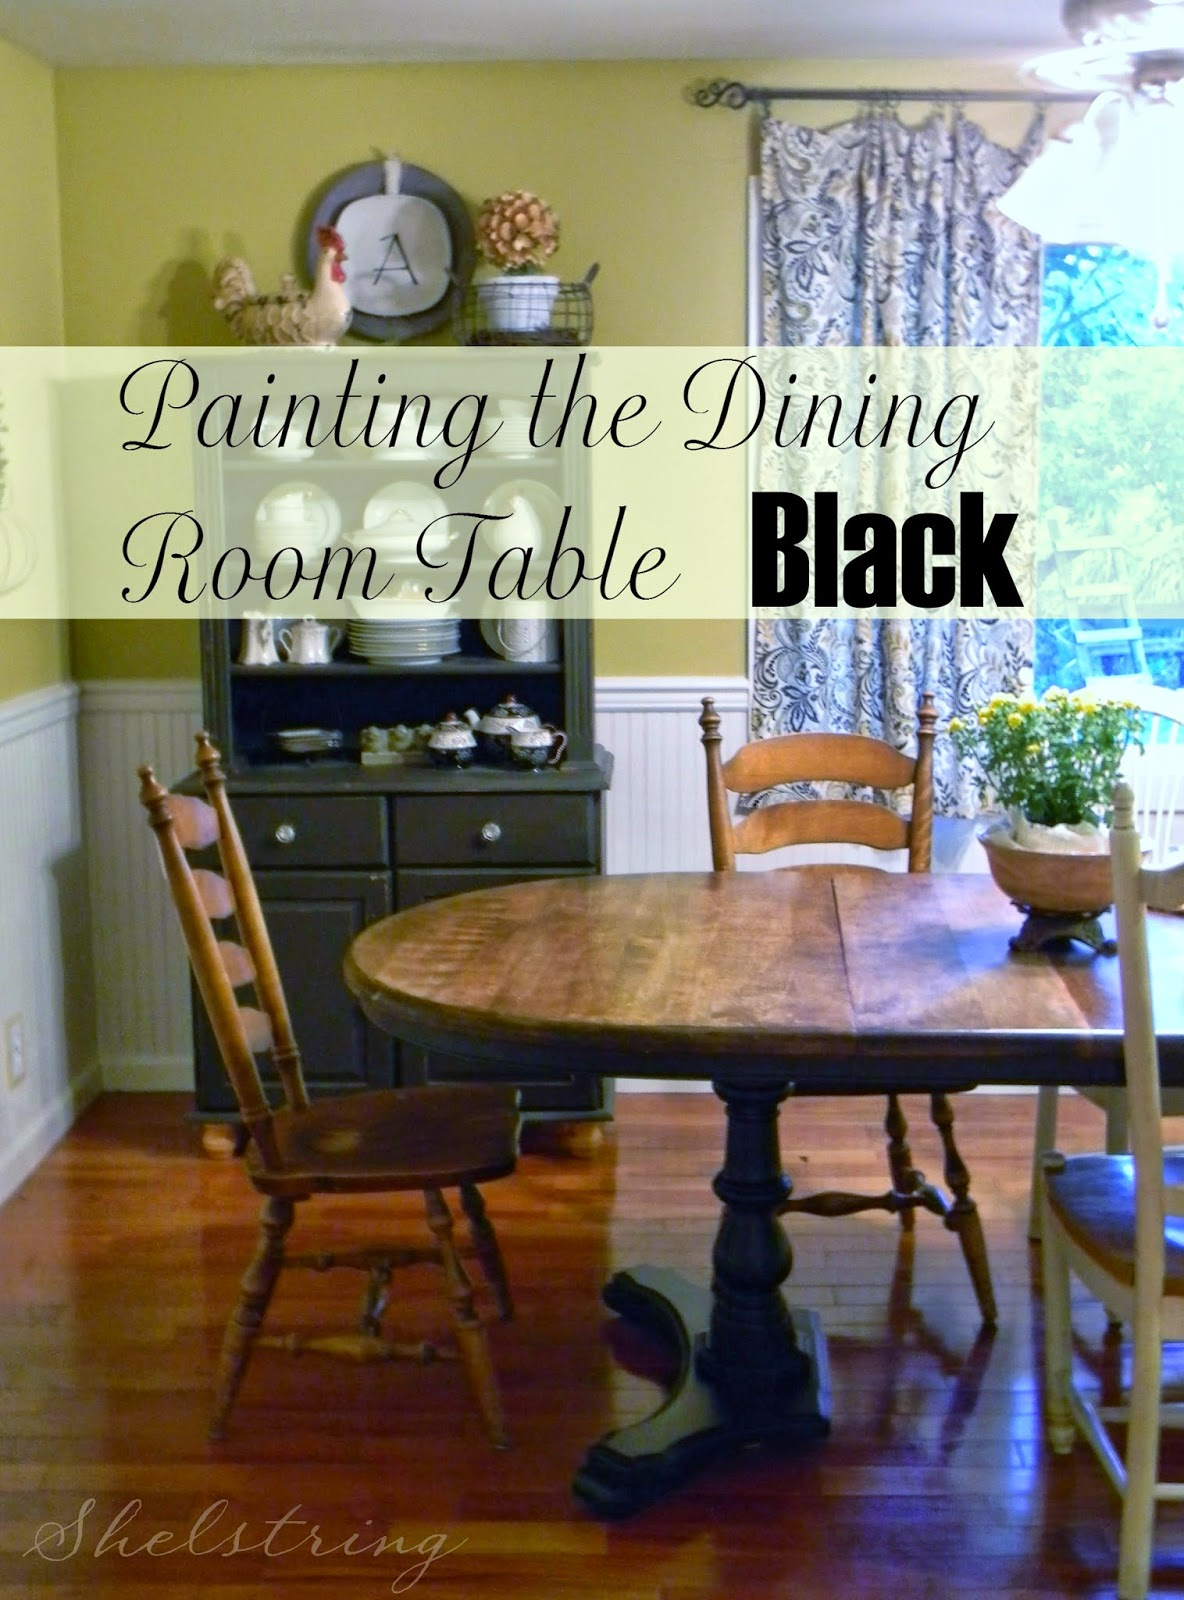 Shelstring Blog Painting The Dining Room Table